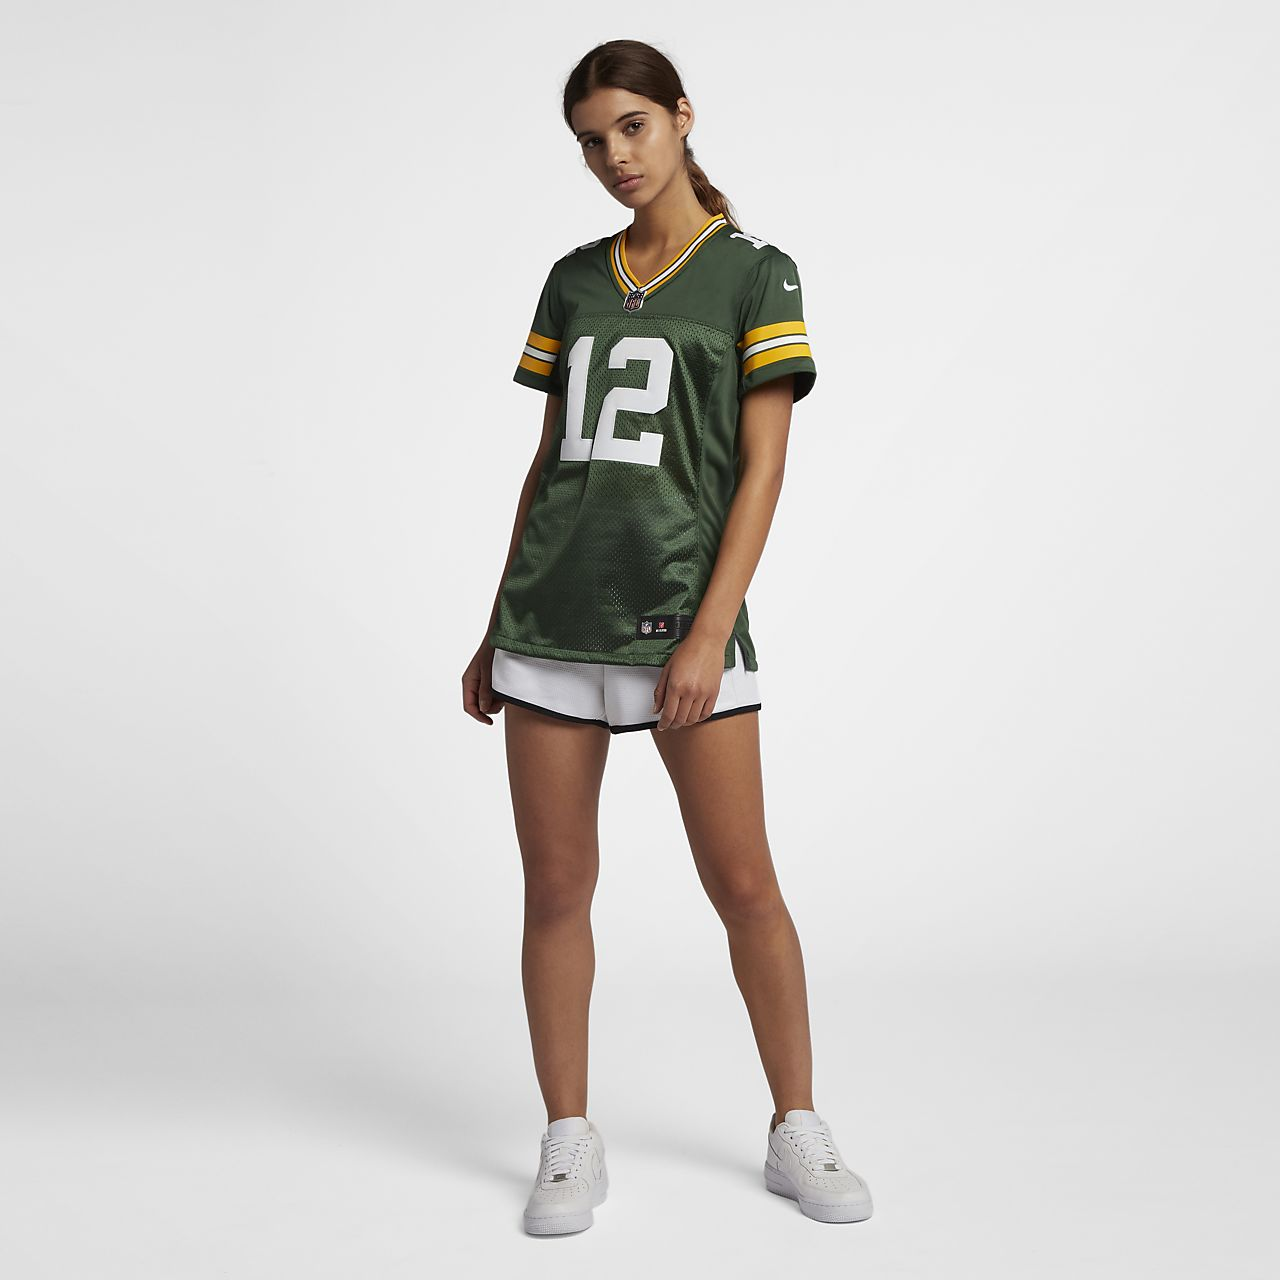 separation shoes 8f6db a4494 NFL Green Bay Packers Limited Classic (Aaron Rodgers) Women's Football  Jersey